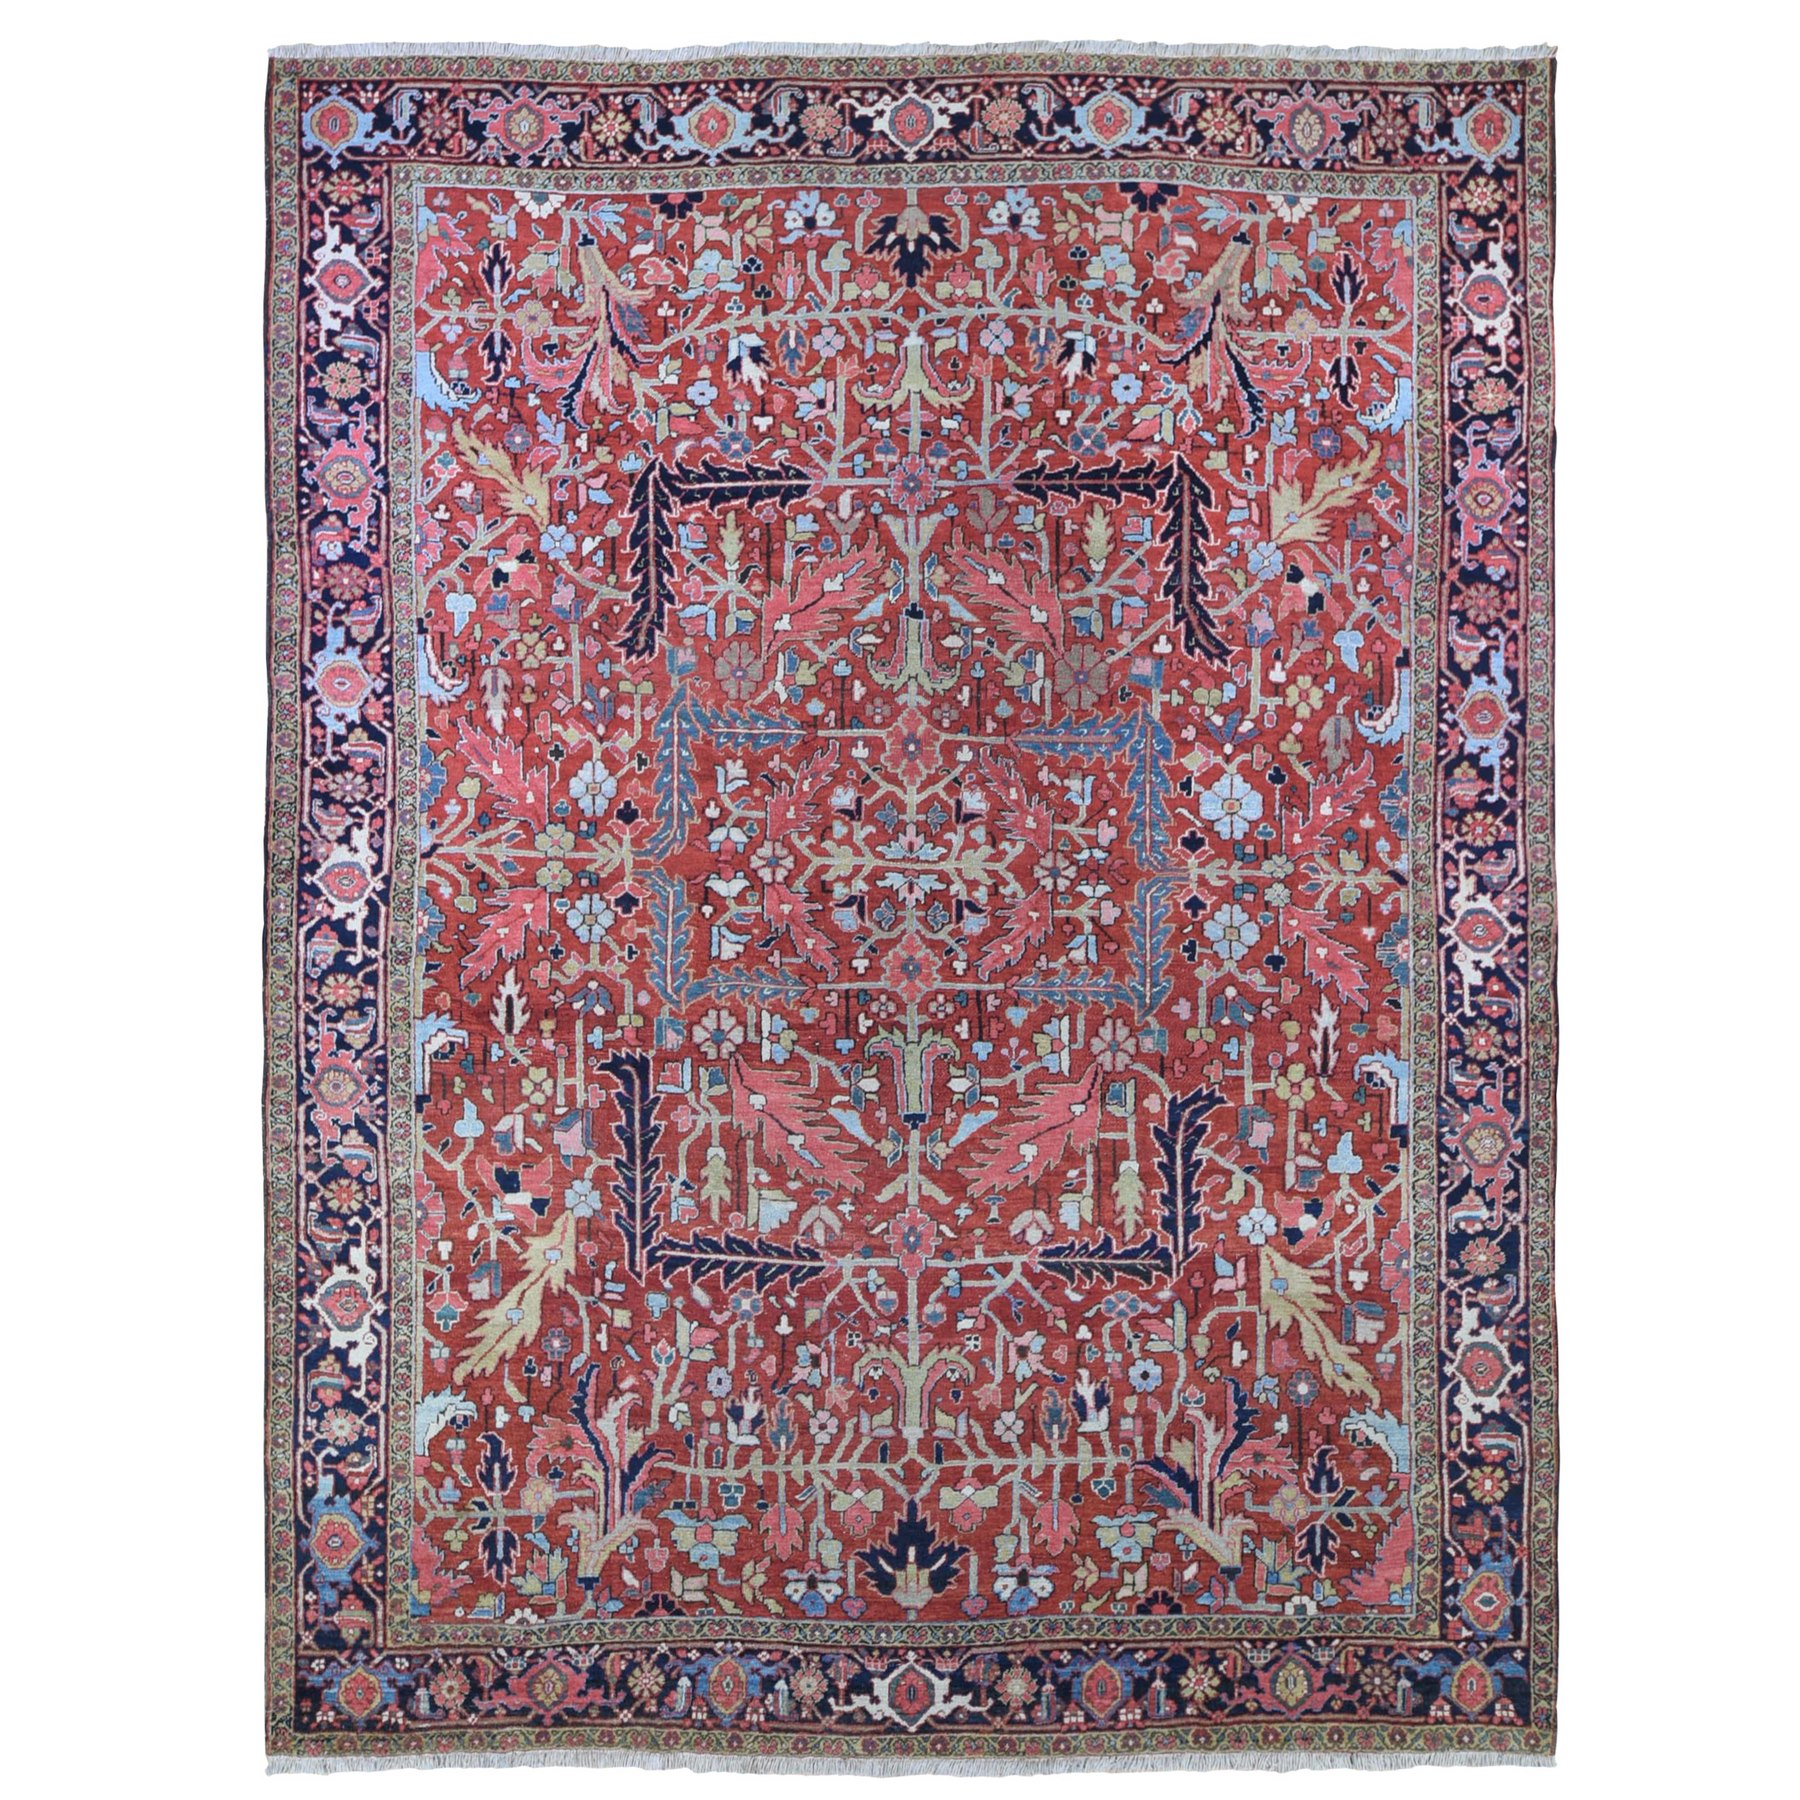 Antique Collection Hand Knotted Red Rug No: 1133306